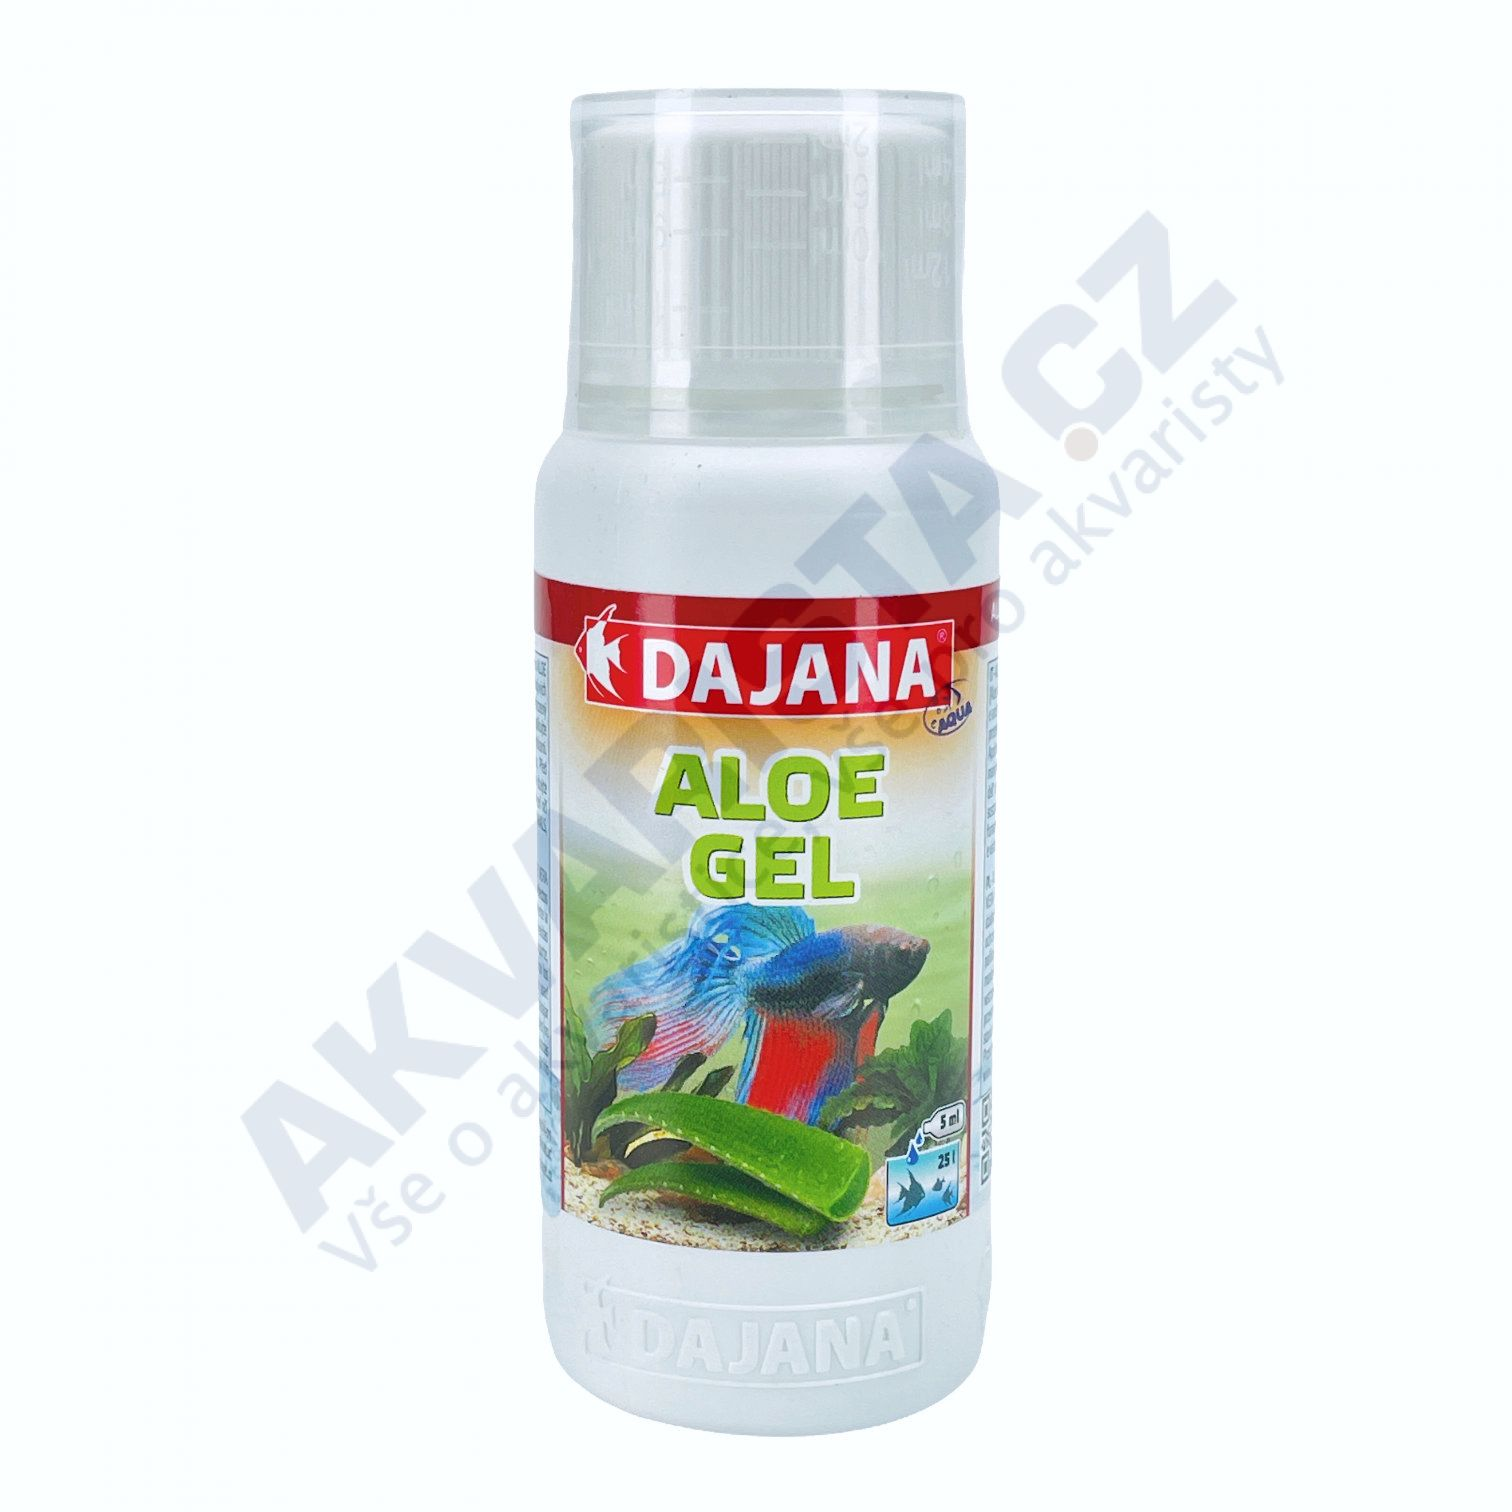 Dajana ALOE gel 500ml